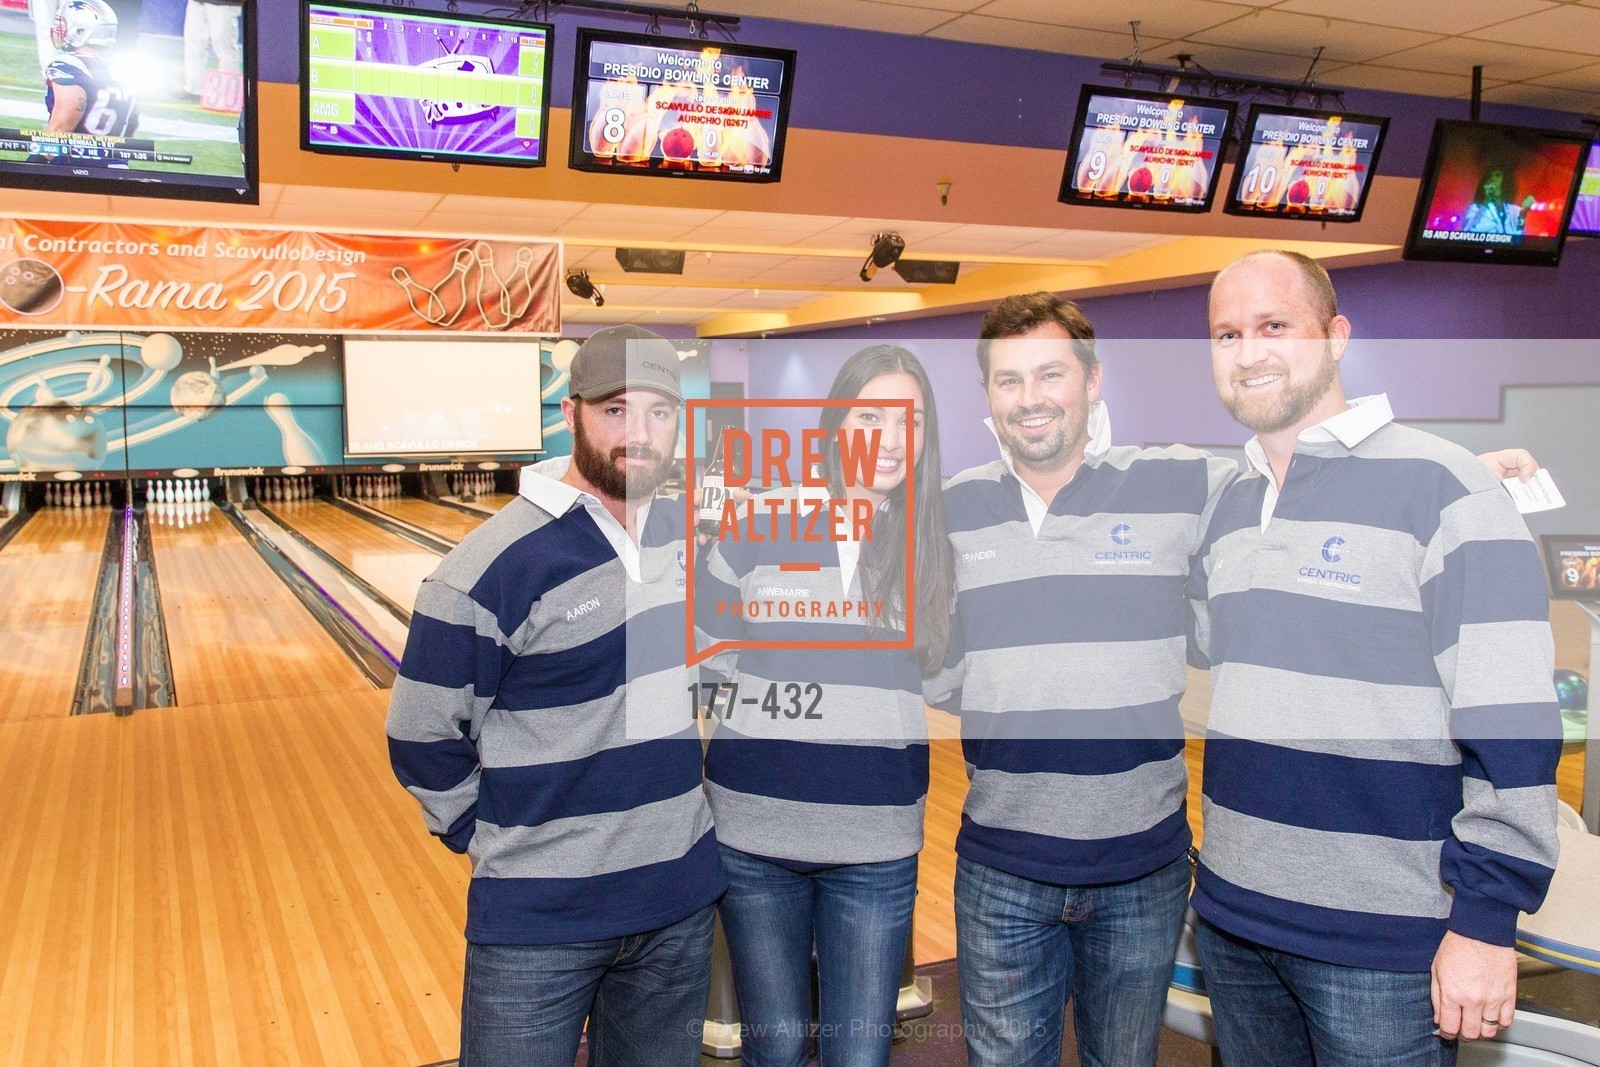 Aaron Botenhagen, Annemarie Gresh, Branden McDonald, Dave Riordan, ScavulloDesign Centric Builders Bowling Party, Presidio Bowl. 93 Moraga Ave, October 29th, 2015,Drew Altizer, Drew Altizer Photography, full-service agency, private events, San Francisco photographer, photographer california